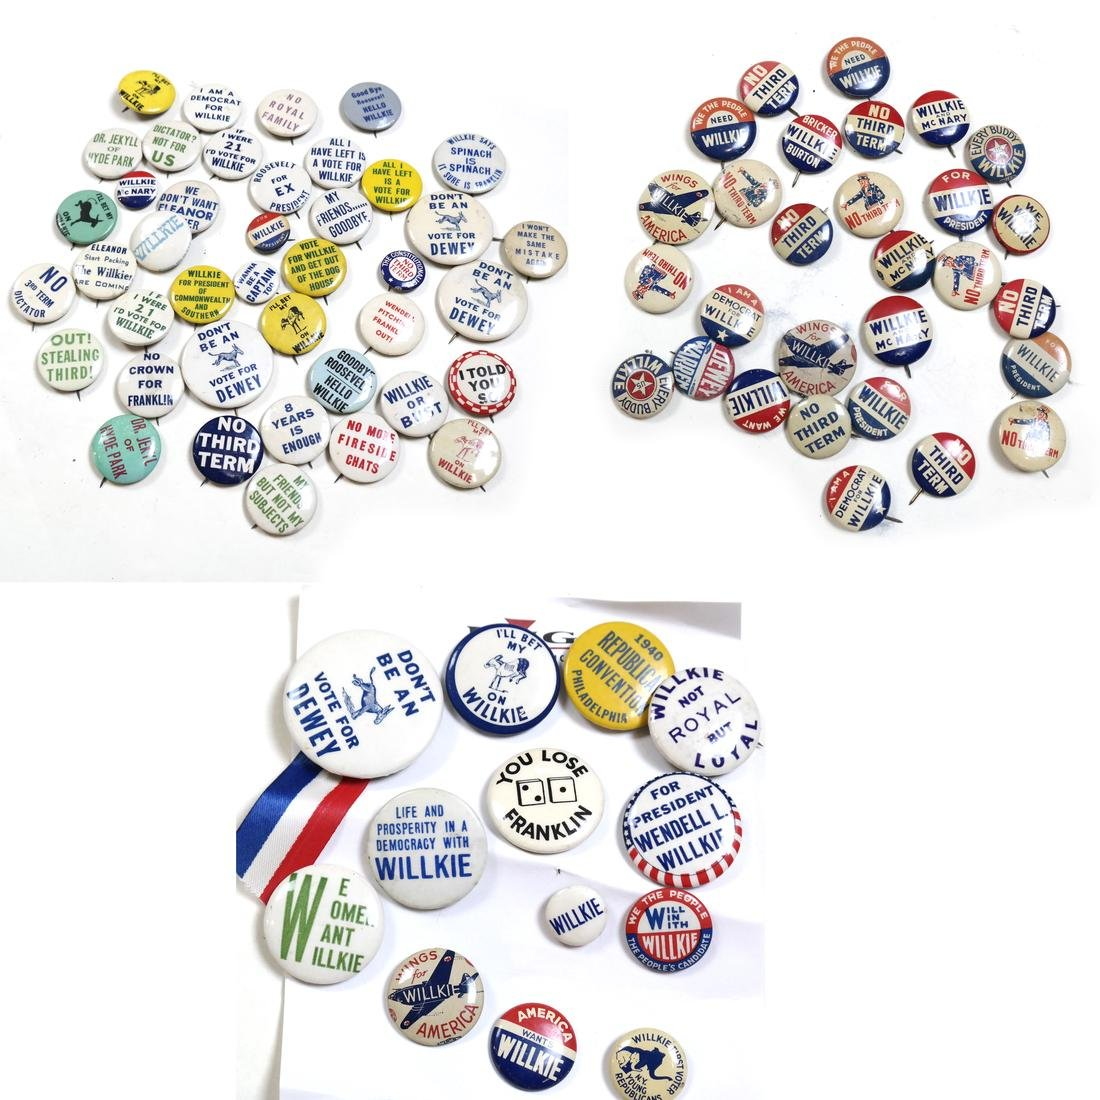 LARGE GROUP OF W. WILLKIE 1940 CAMPAIGN BUTTONS